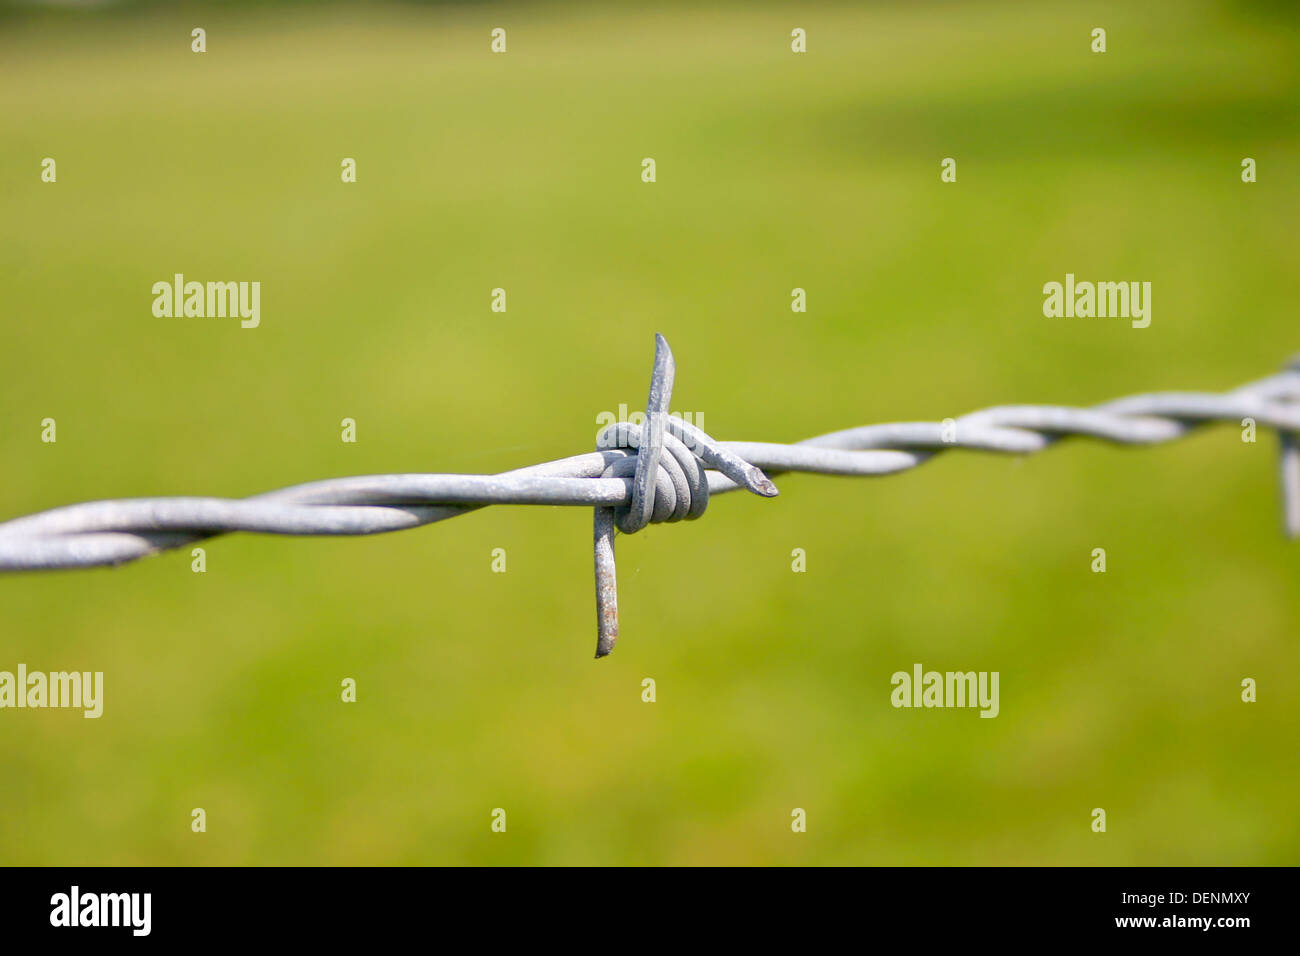 A Closeup of a Barbwire Spike - Stock Image